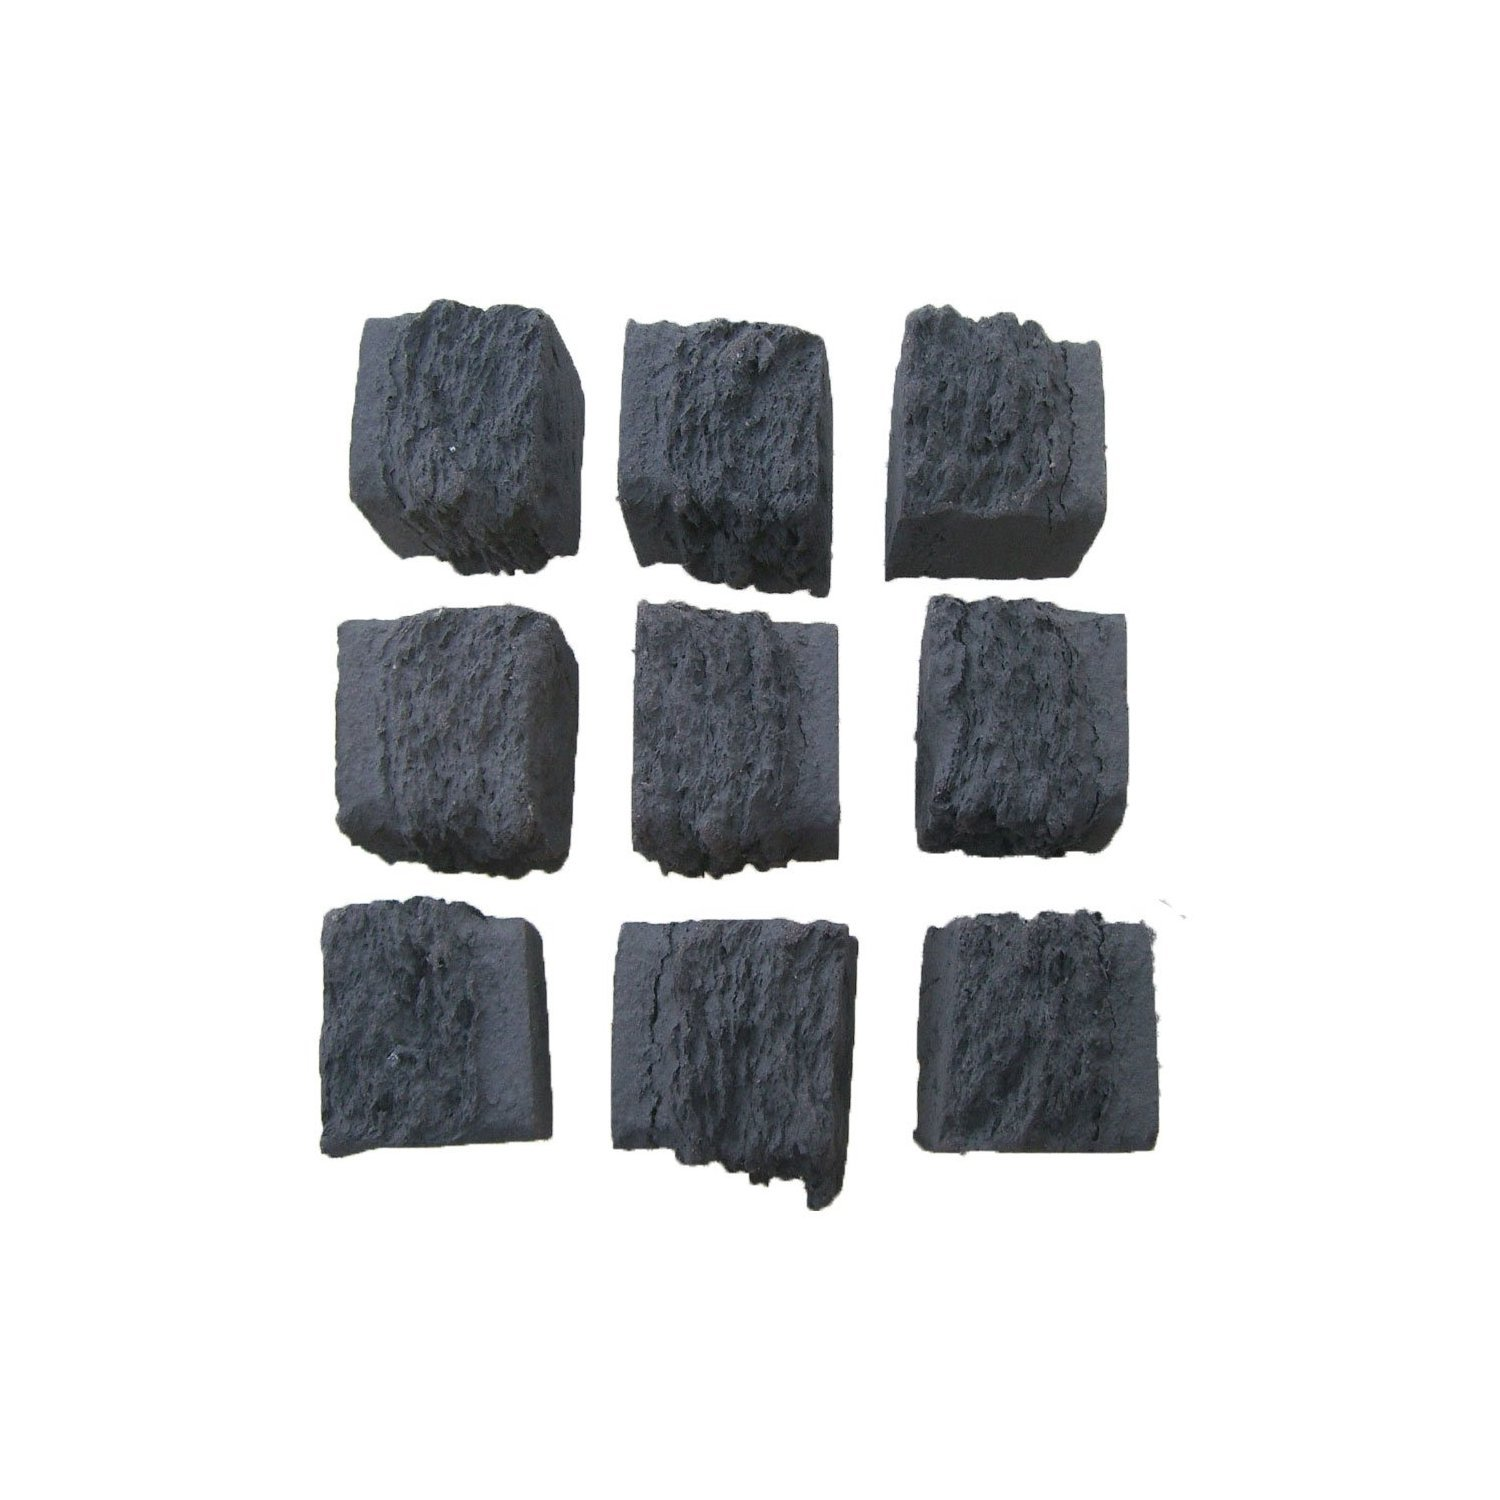 10 LARGE GAS FIRE REPLACEMENT CERAMIC COALS COALS 4 YOU